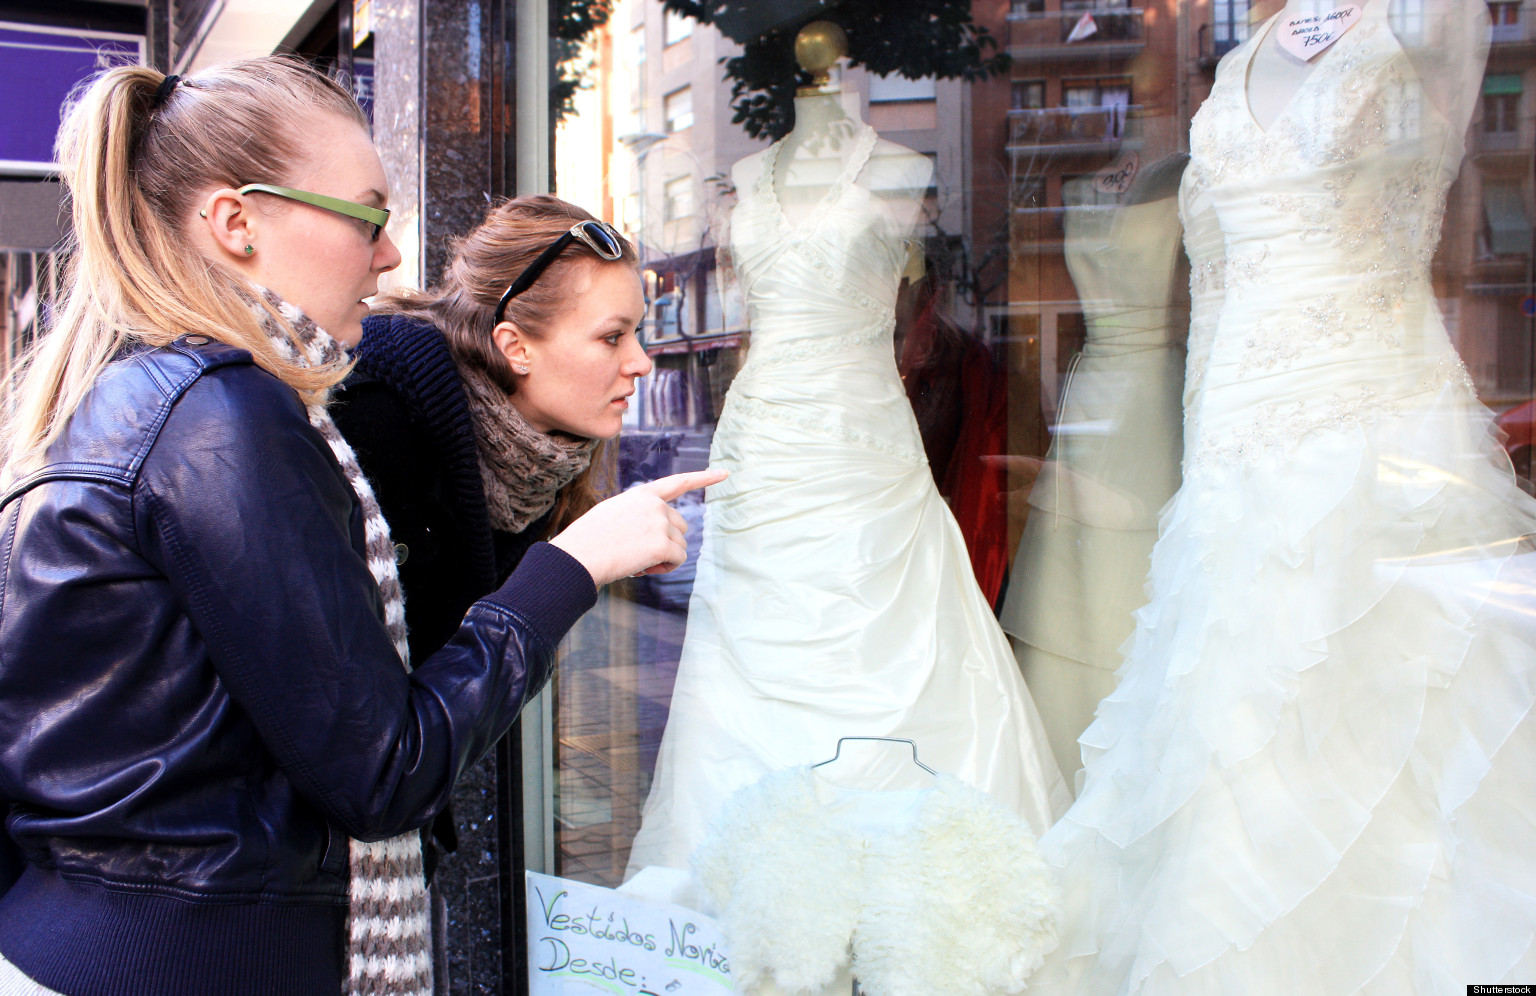 Wedding gown designers face copycat dresses made cheaply huffpost ombrellifo Gallery